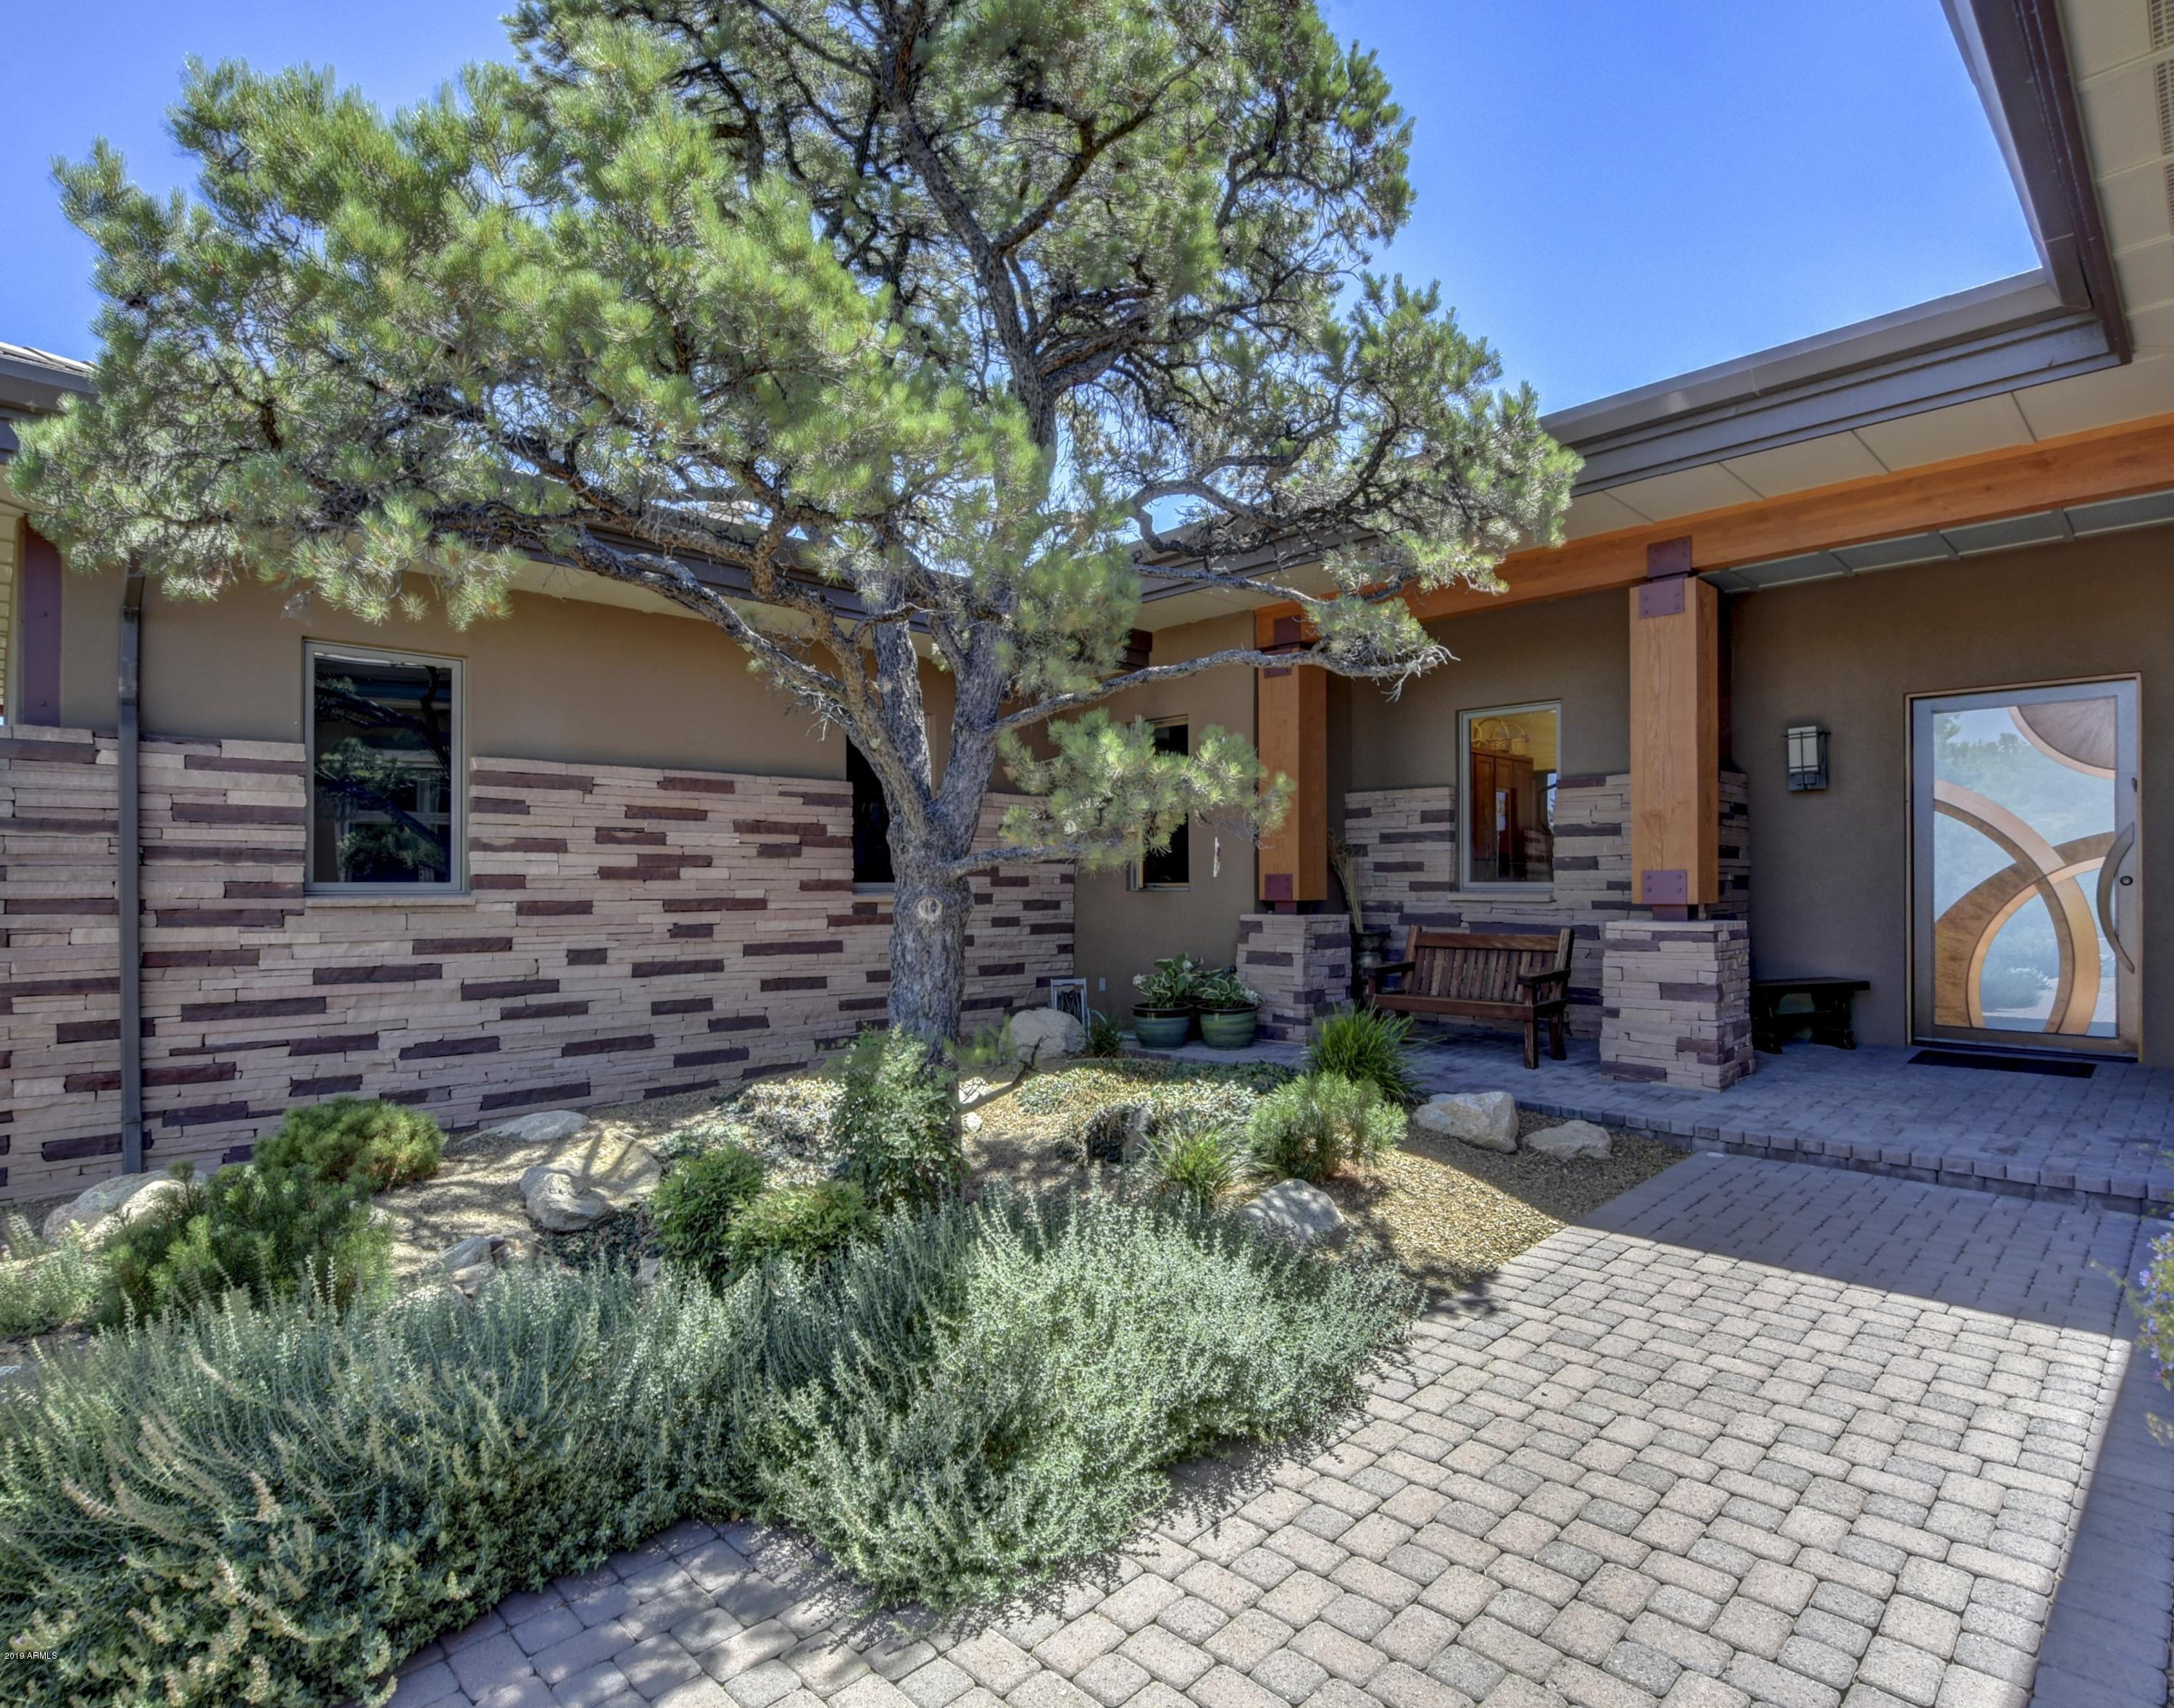 6235 W ALMOSTA RANCH Road, Prescott, Arizona